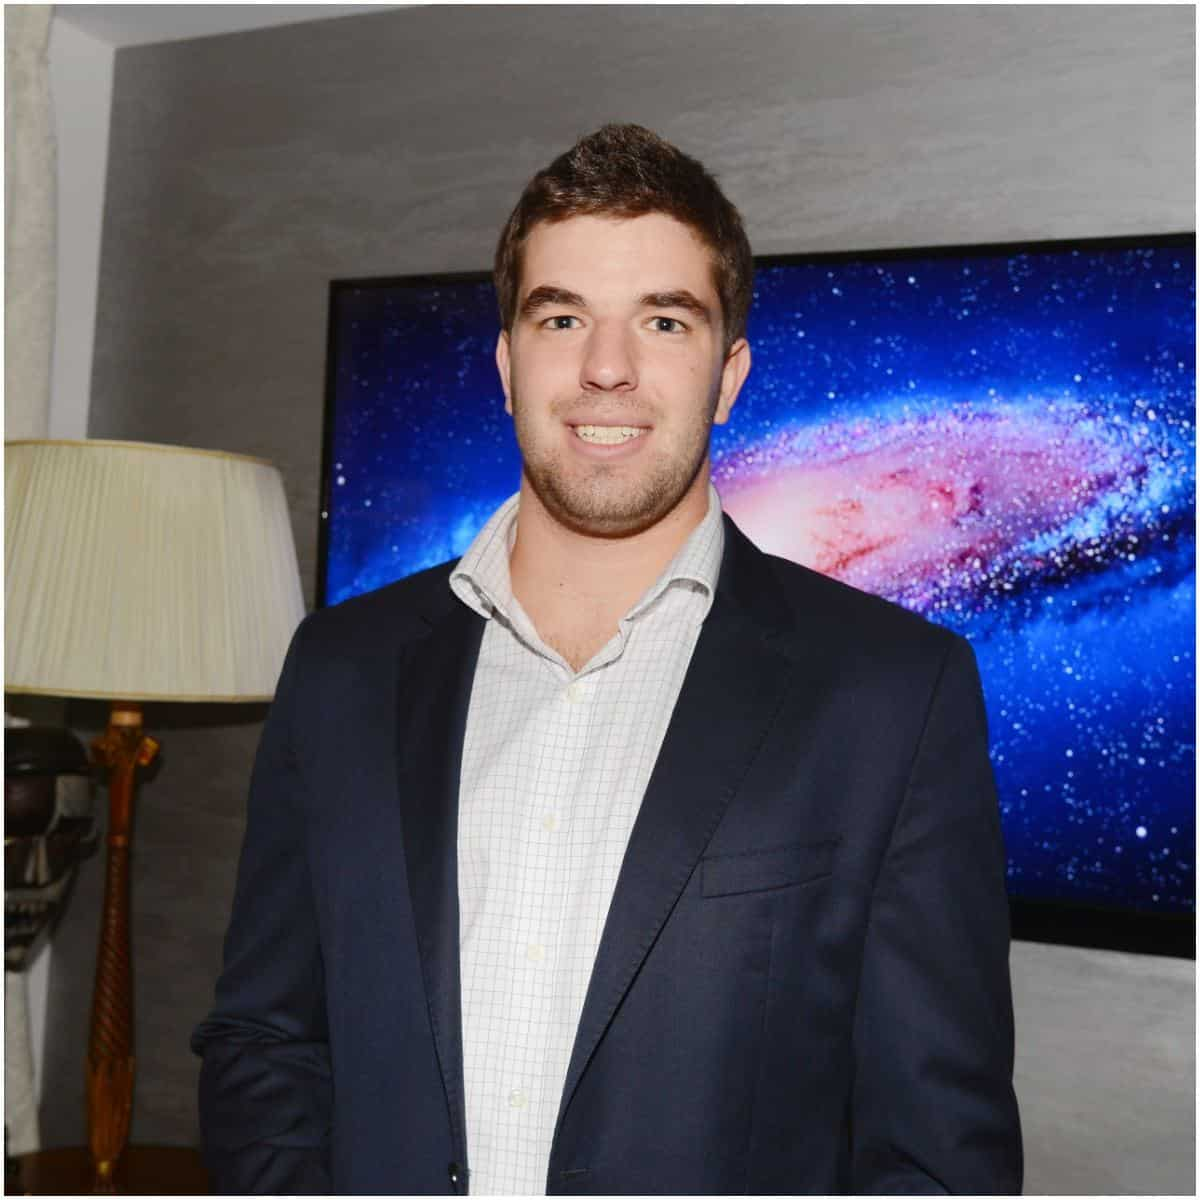 what is the net worth of Billy McFarland